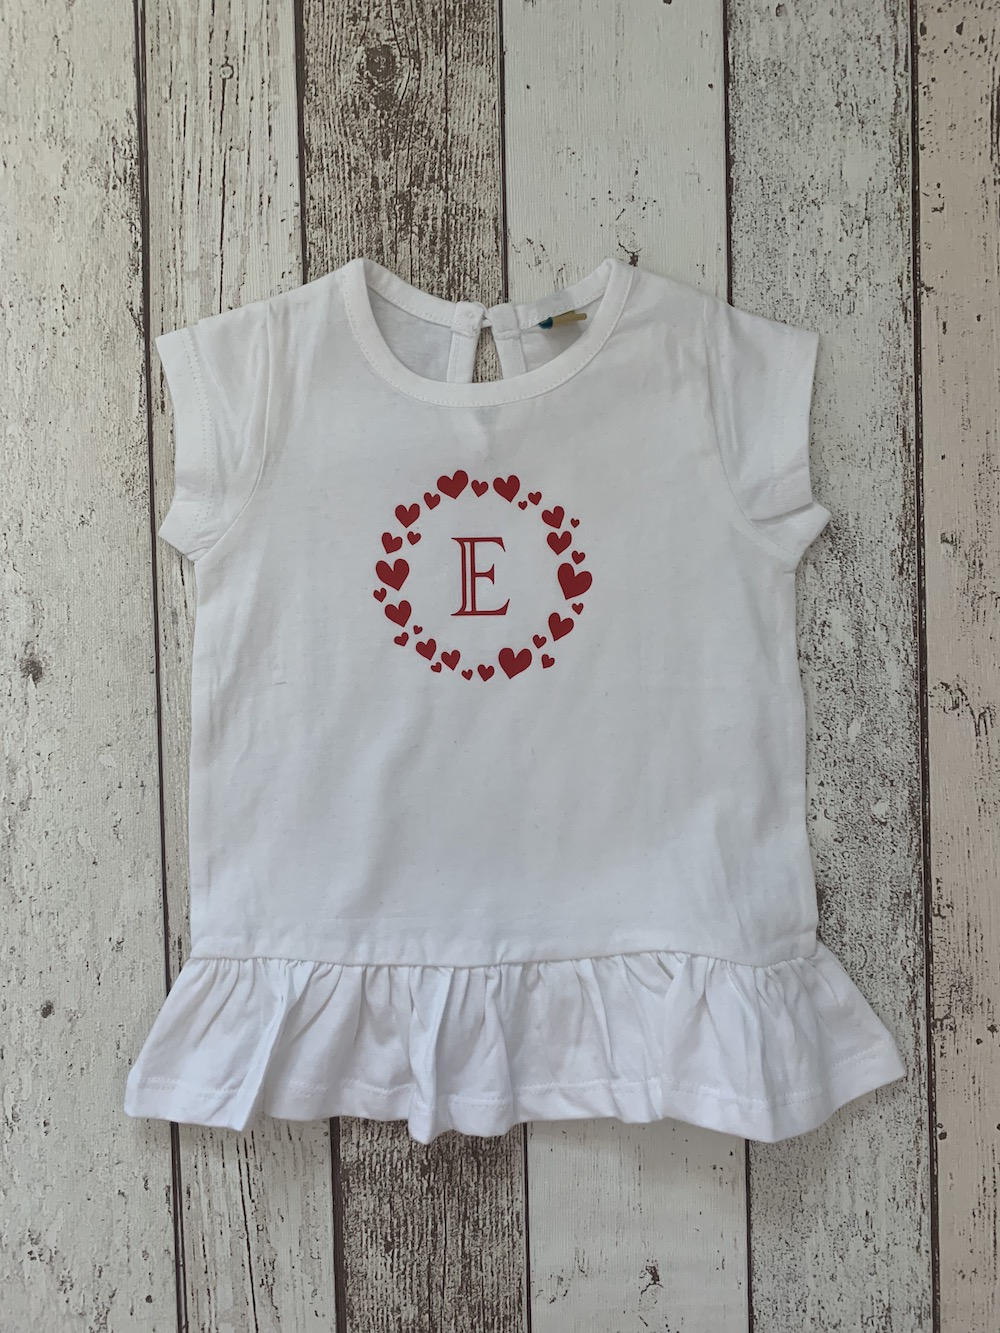 Personalised Frill Longline Tshirt – Red Hearts